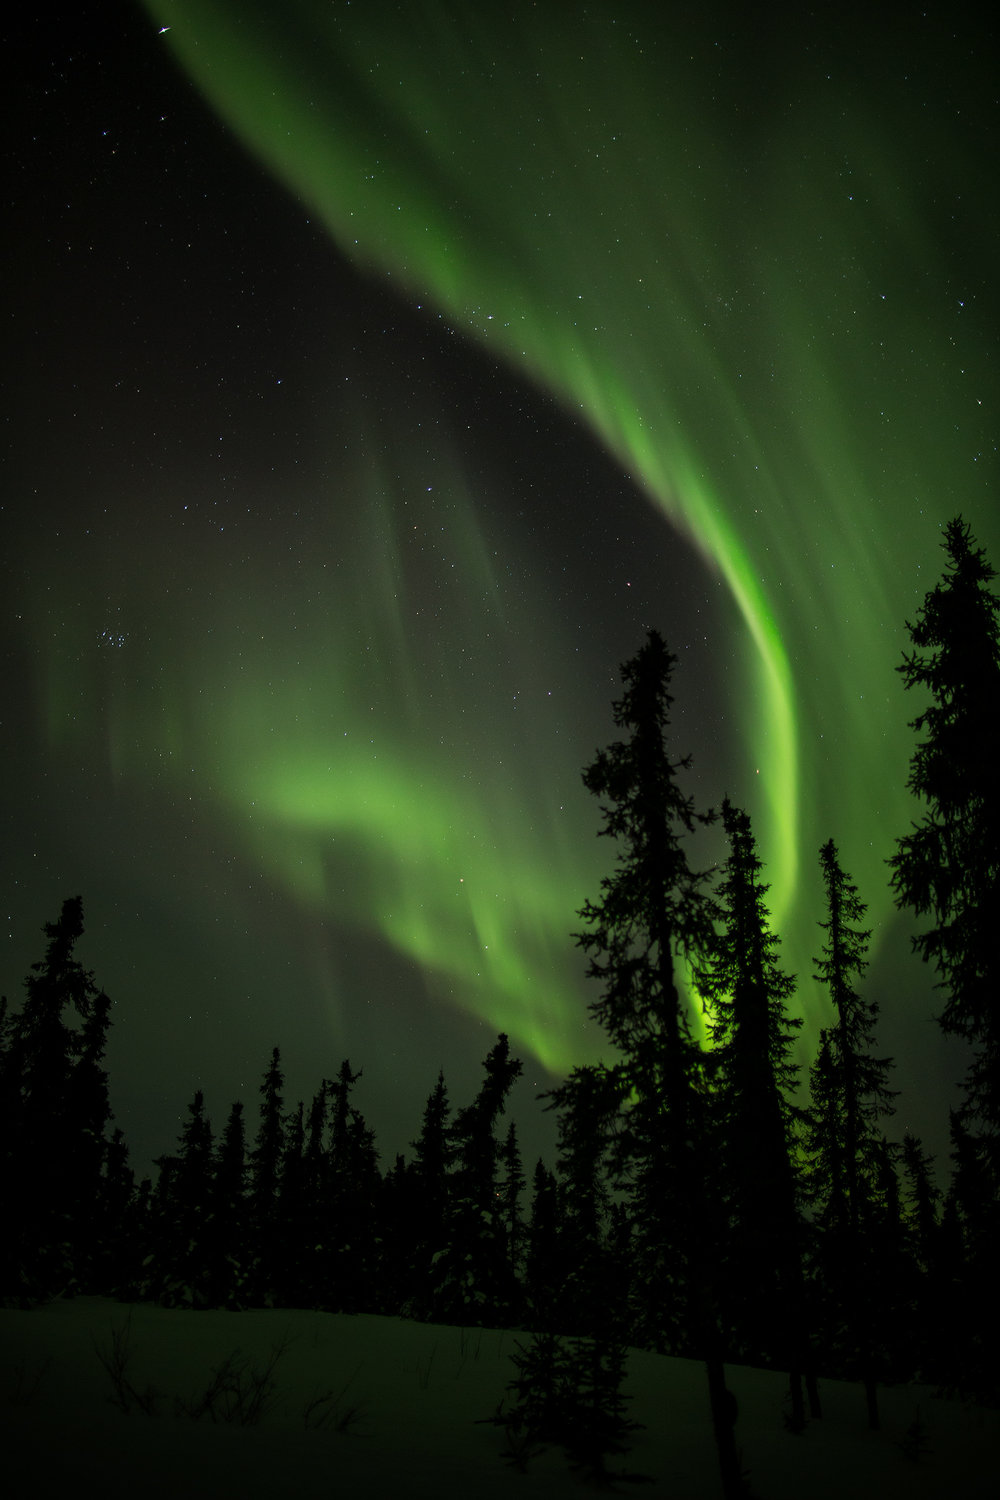 Clear skies allow for unobstructed view of the heavens as the aurora dances above a stand of White Spruce near Cleary Summit. Click to view full image.